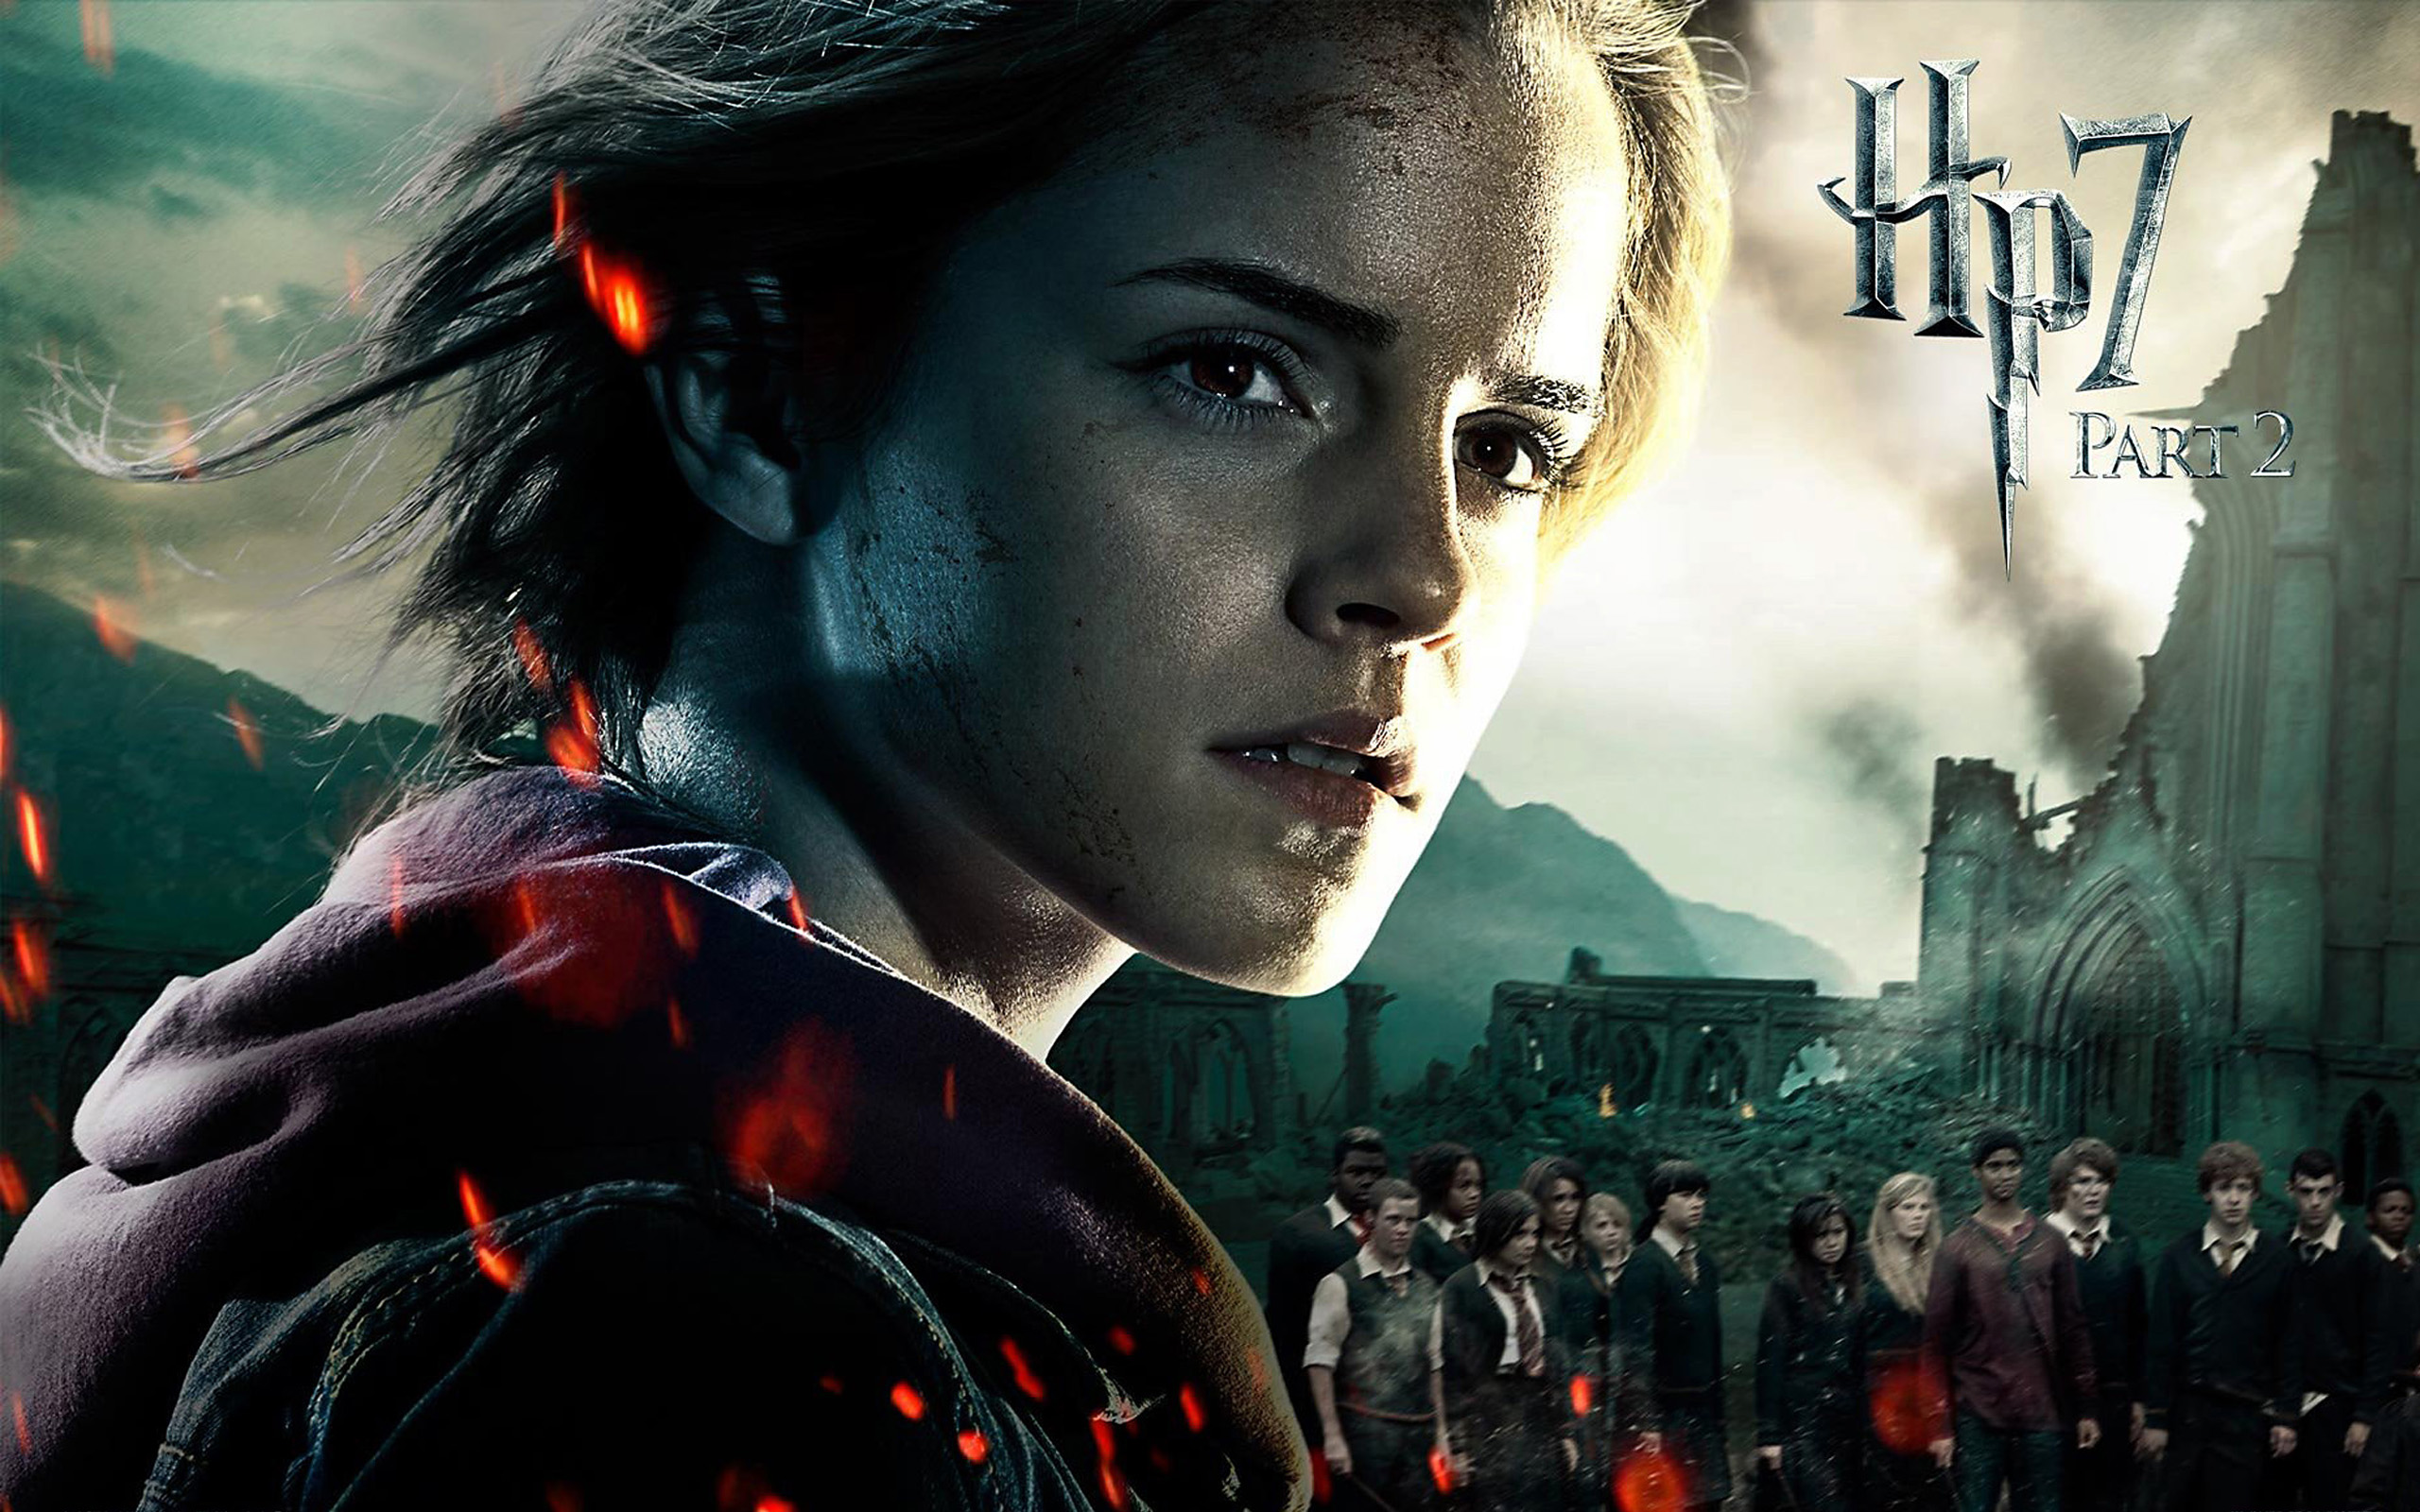 Harry Potter, the Deathly Hallows, Part 2 Widescreen ...  Harry Potter, t...